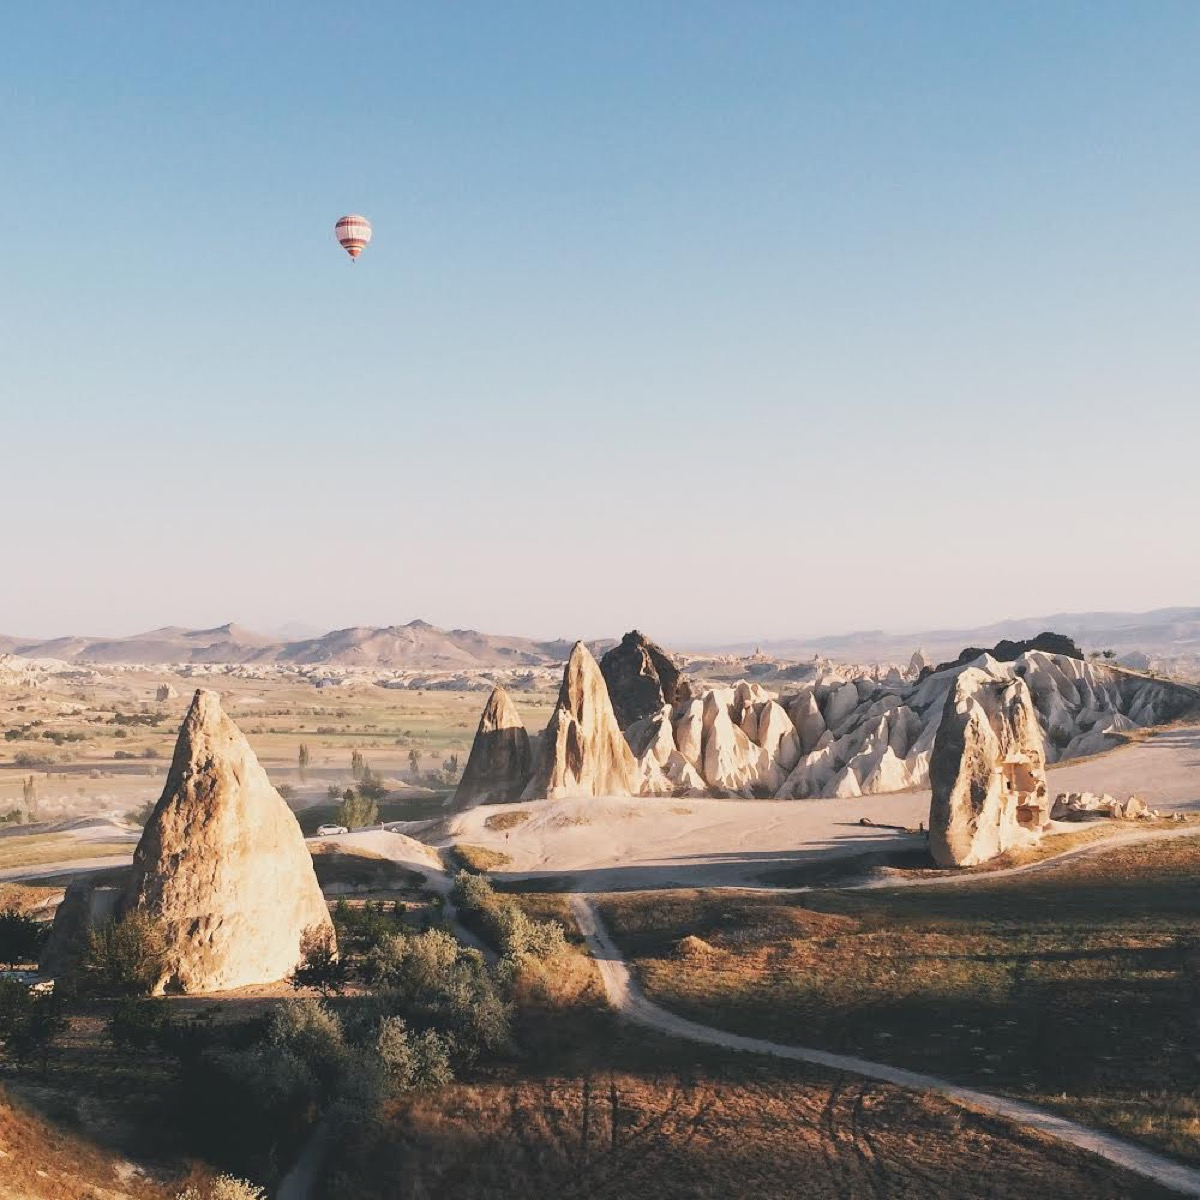 Dan Rubin photo of hot air balloon floating above rock formations